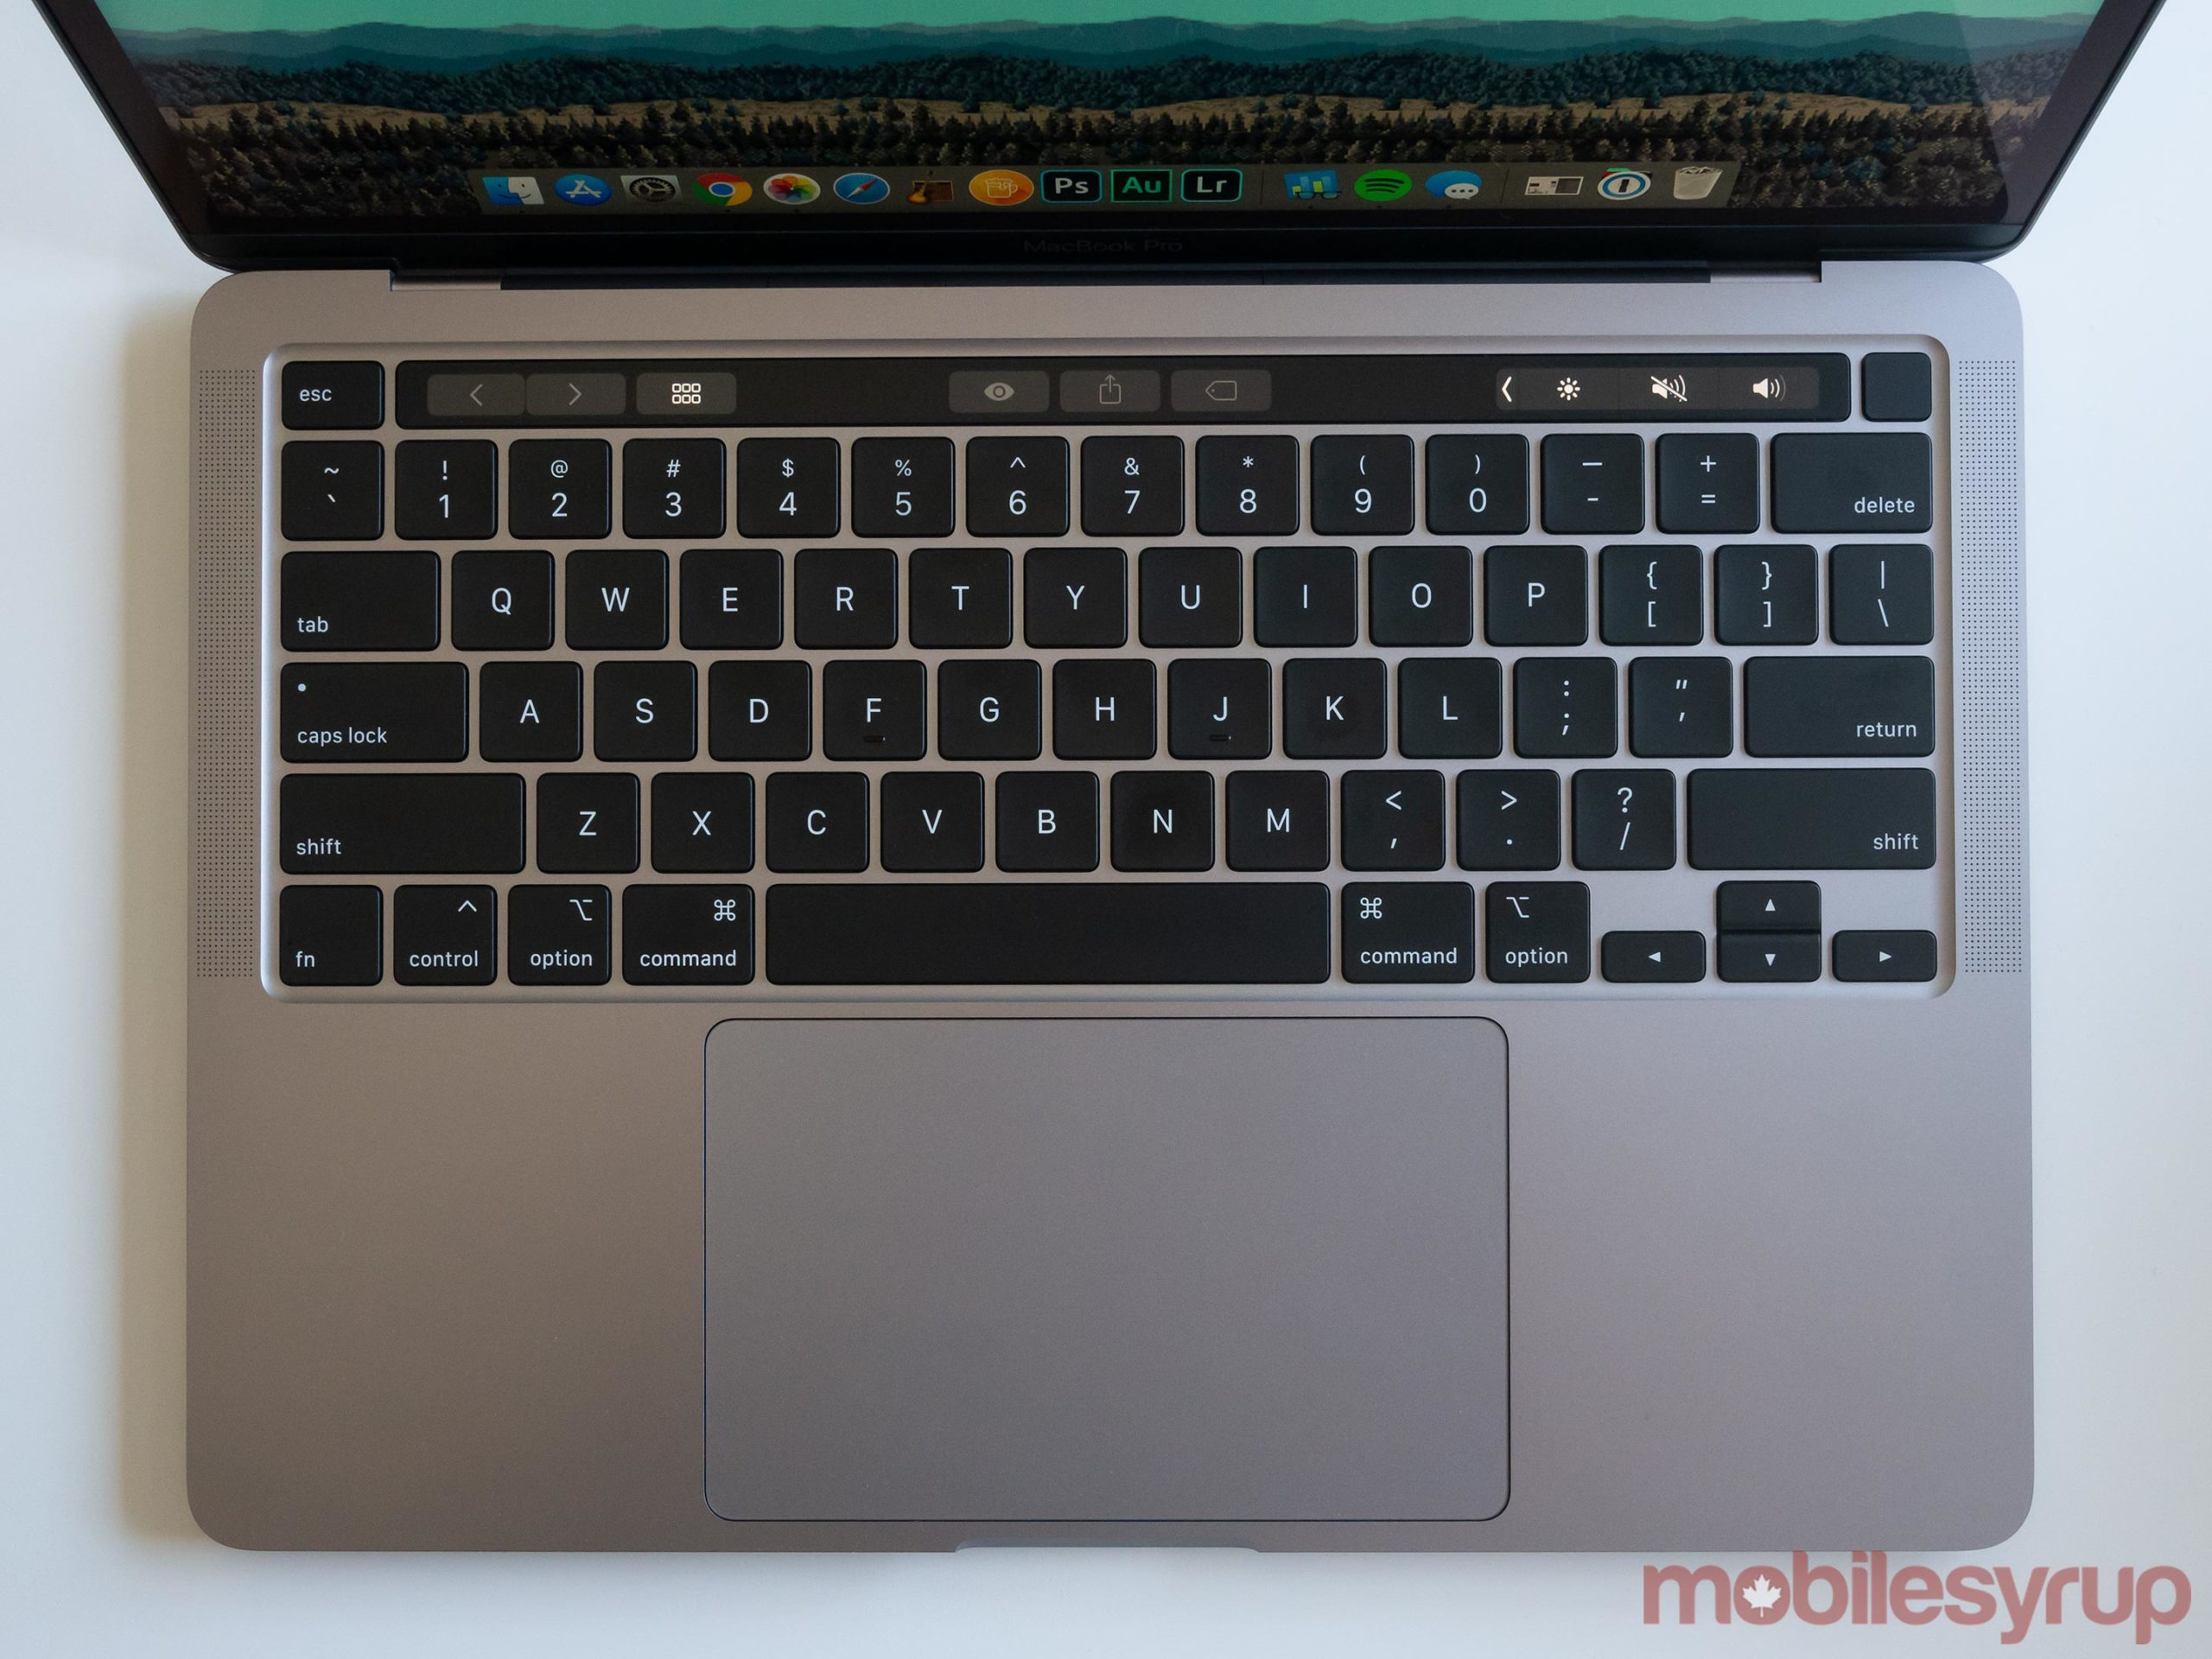 13-inch MacBook Pro (2020) keyboard